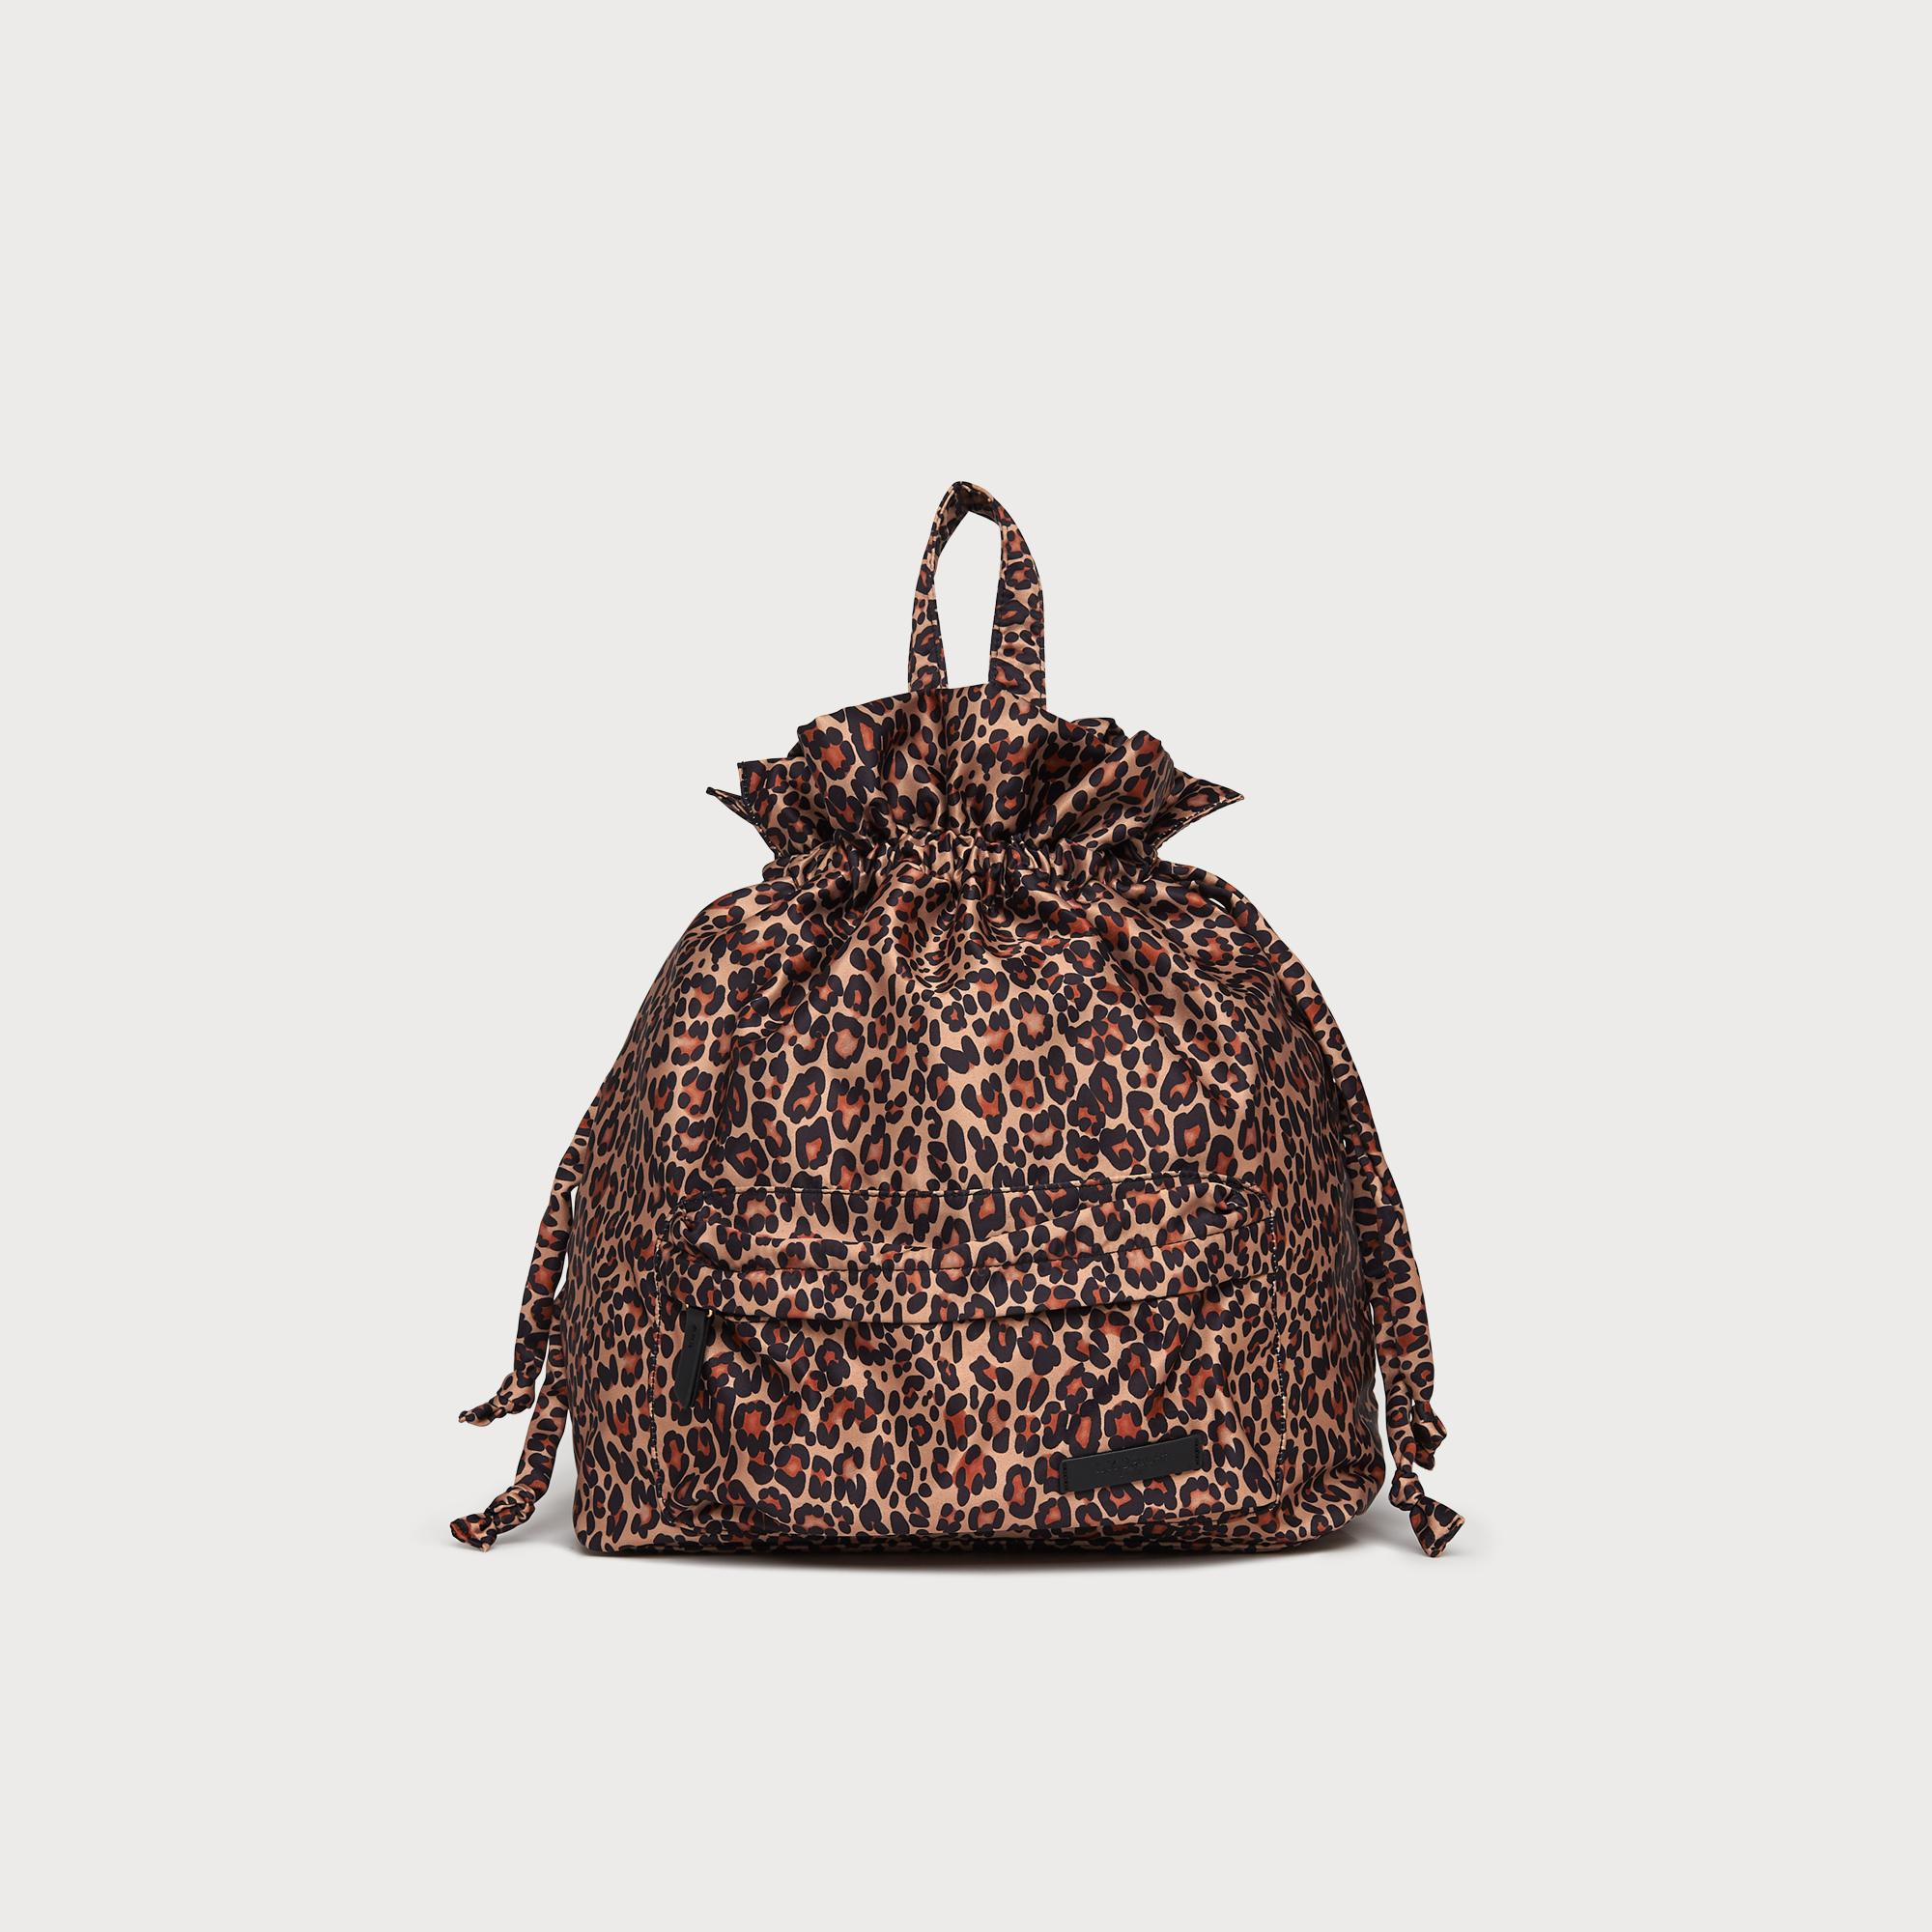 Layla Leopard Print Backpack by L.K.Bennett